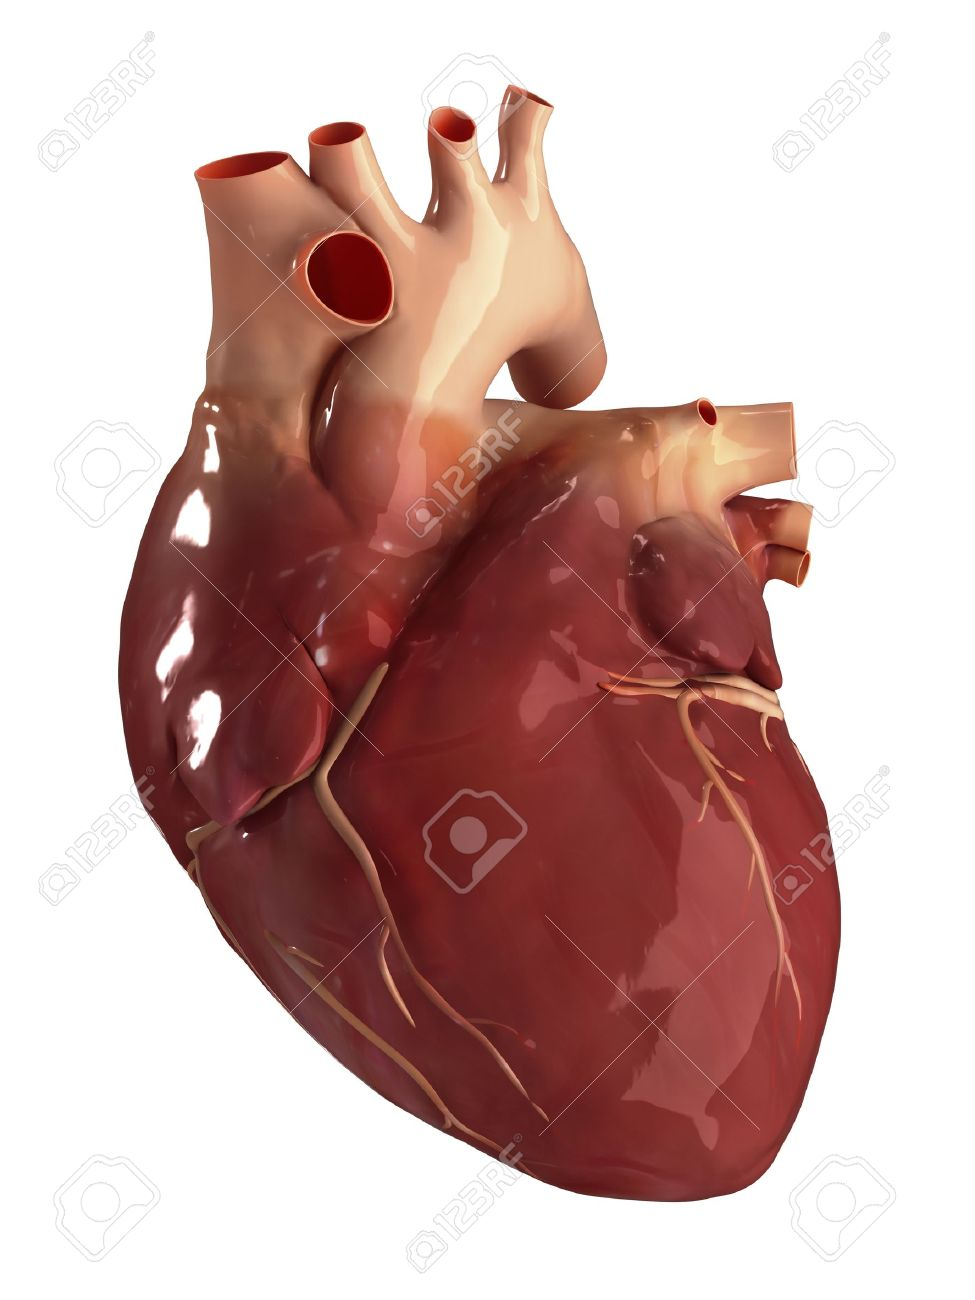 Human Heart Anatomy Stock Photo, Picture And Royalty Free Image ...